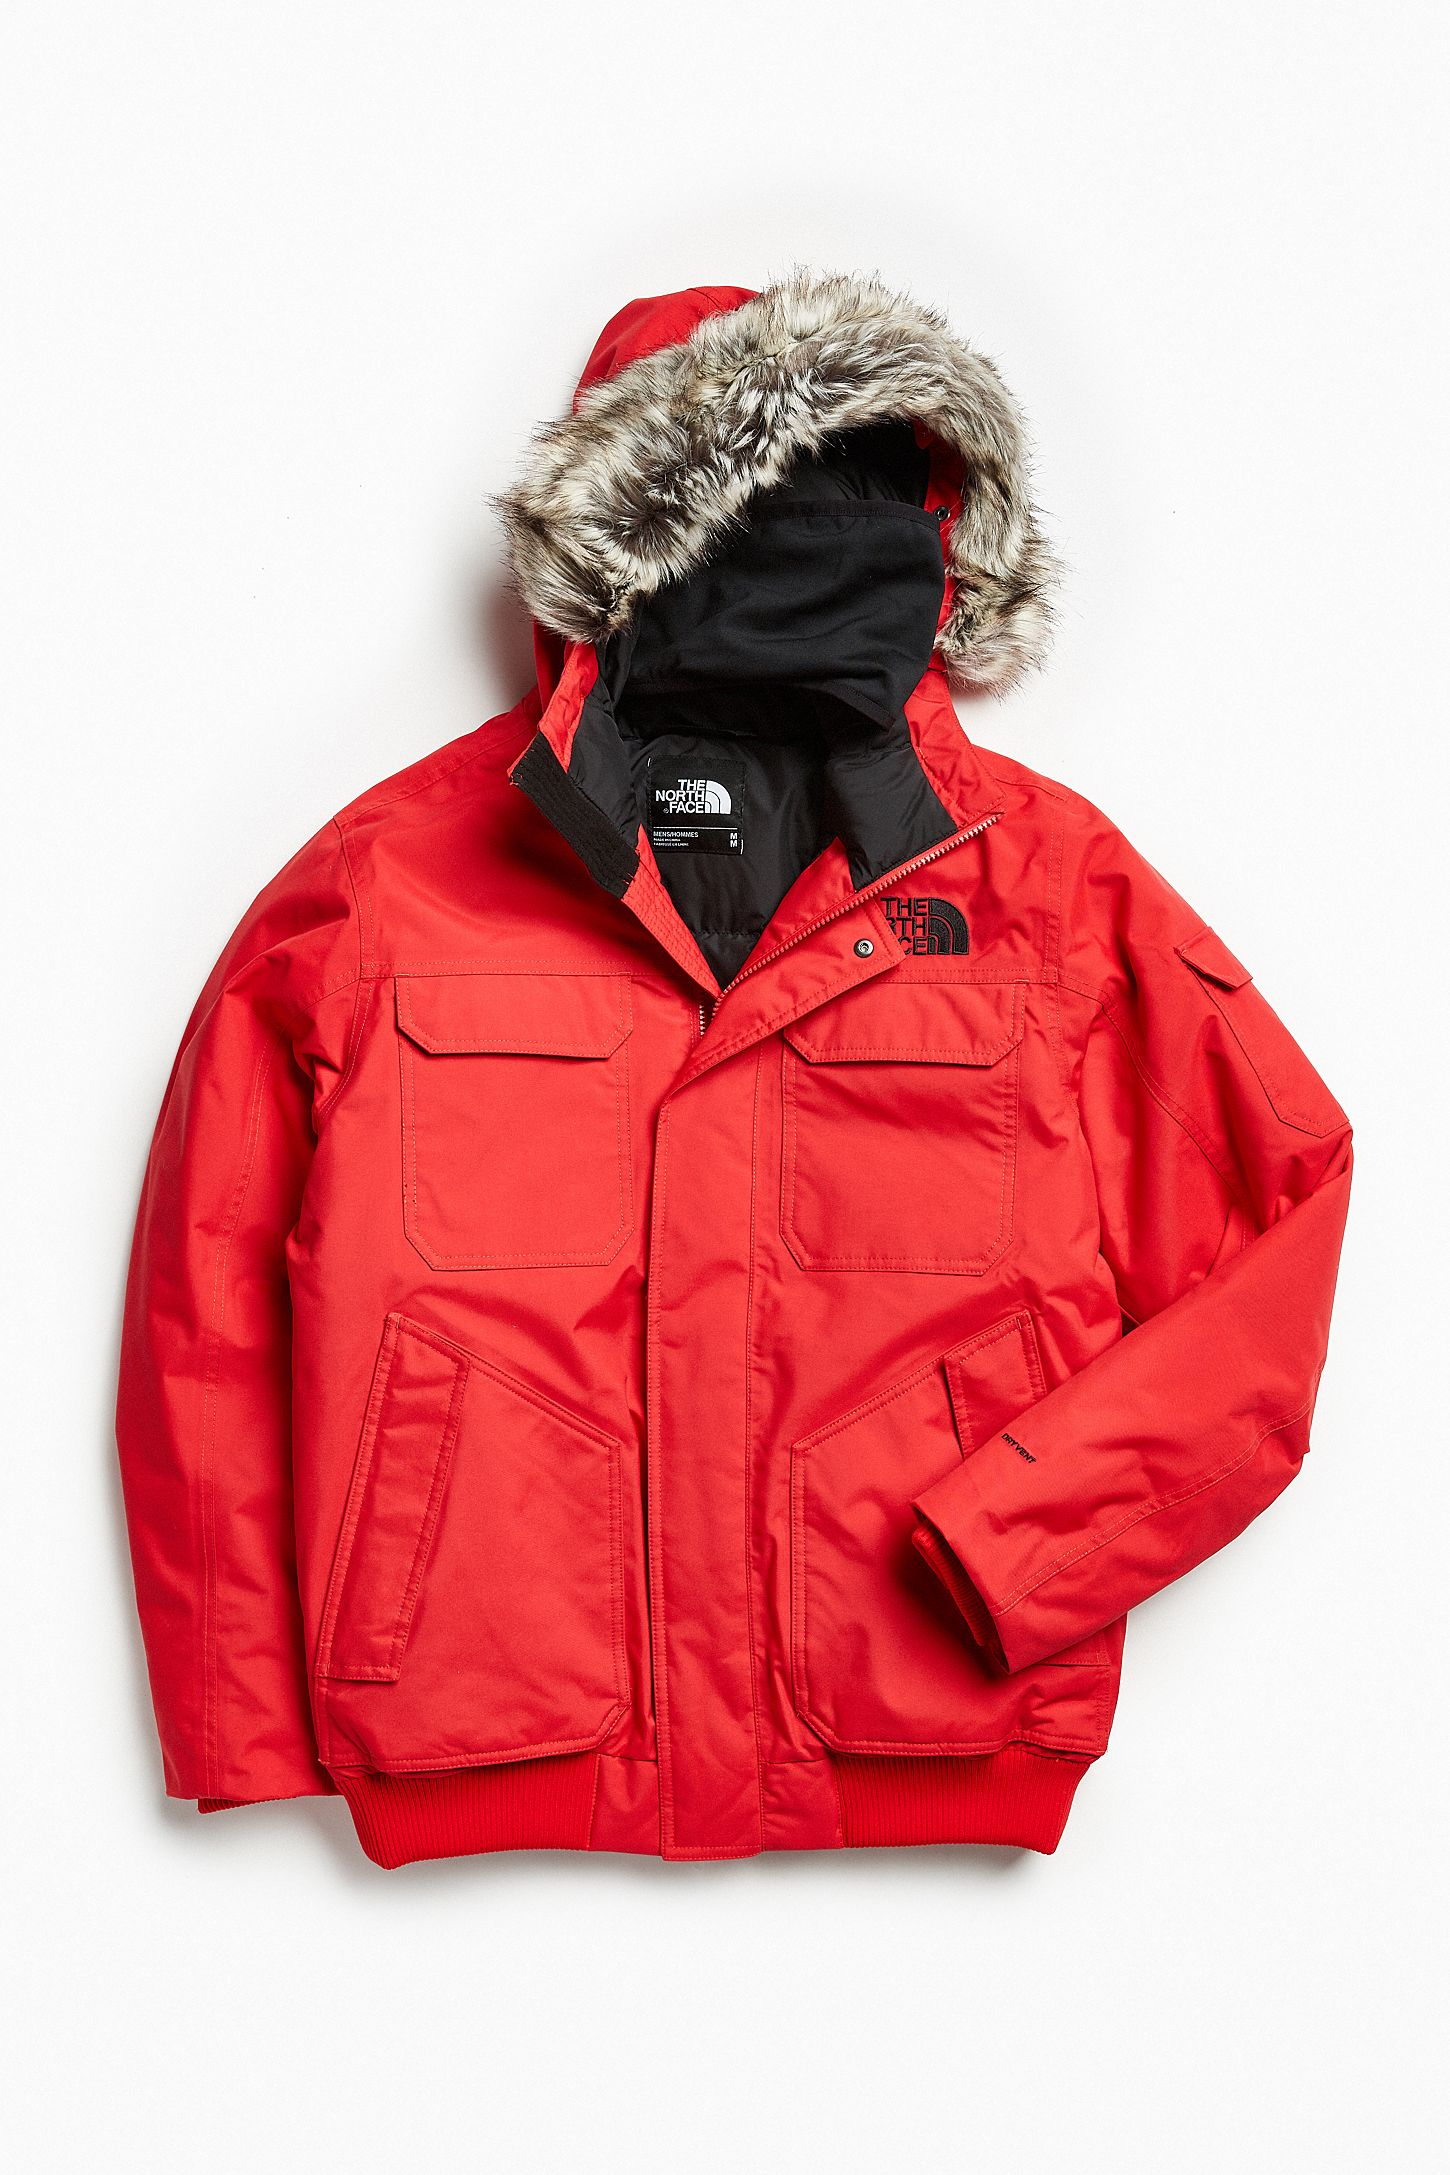 043f41aadd The North Face Gotham III Parka Jacket   Urban Outfitters